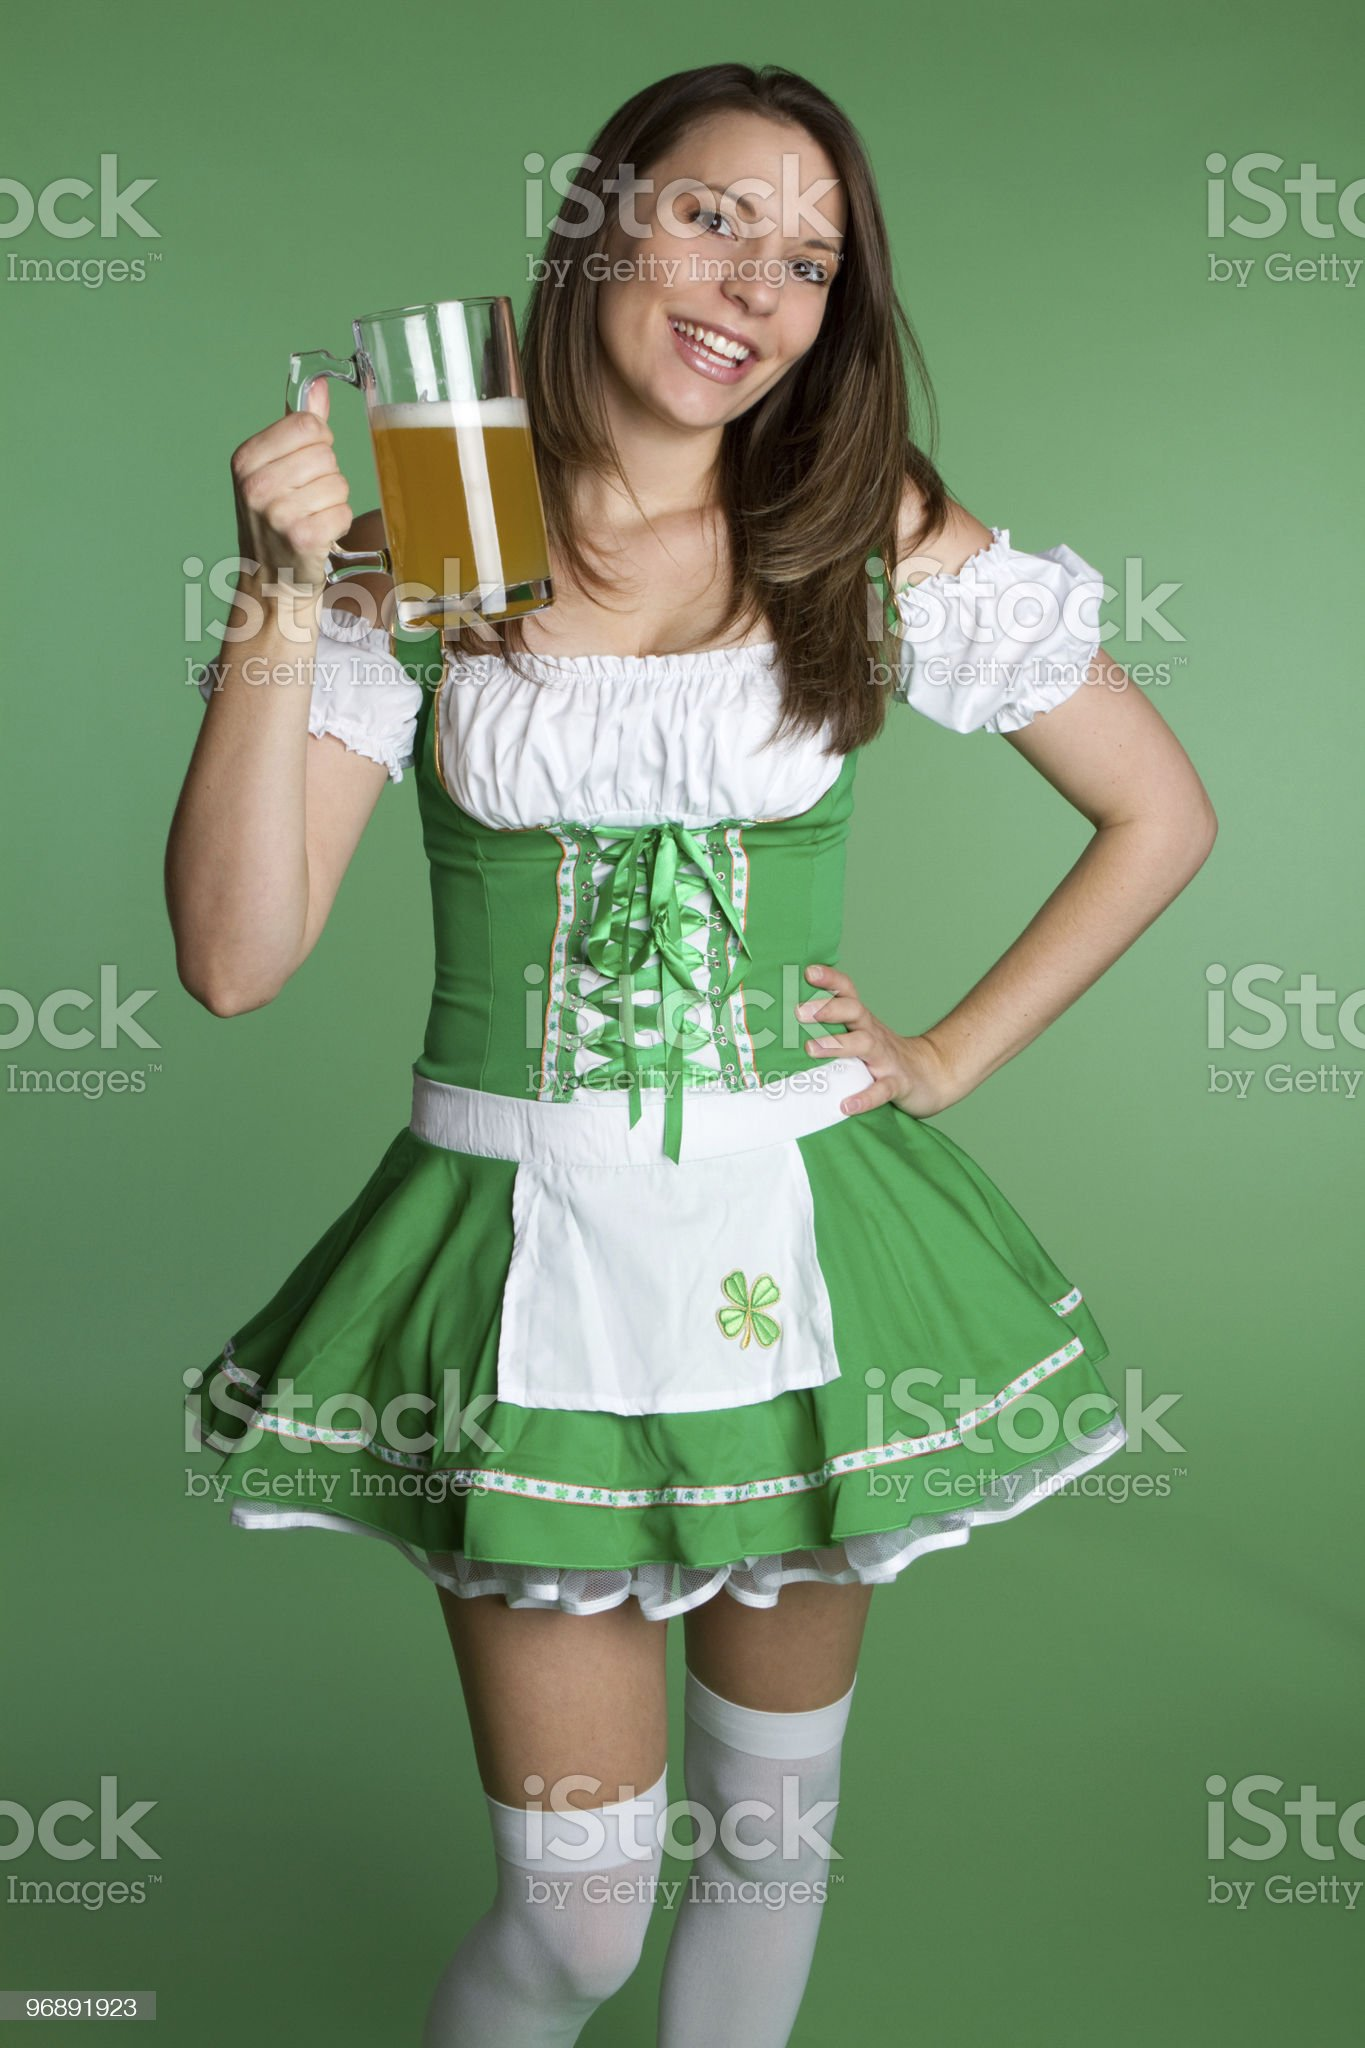 St. Patricks Girl royalty-free stock photo